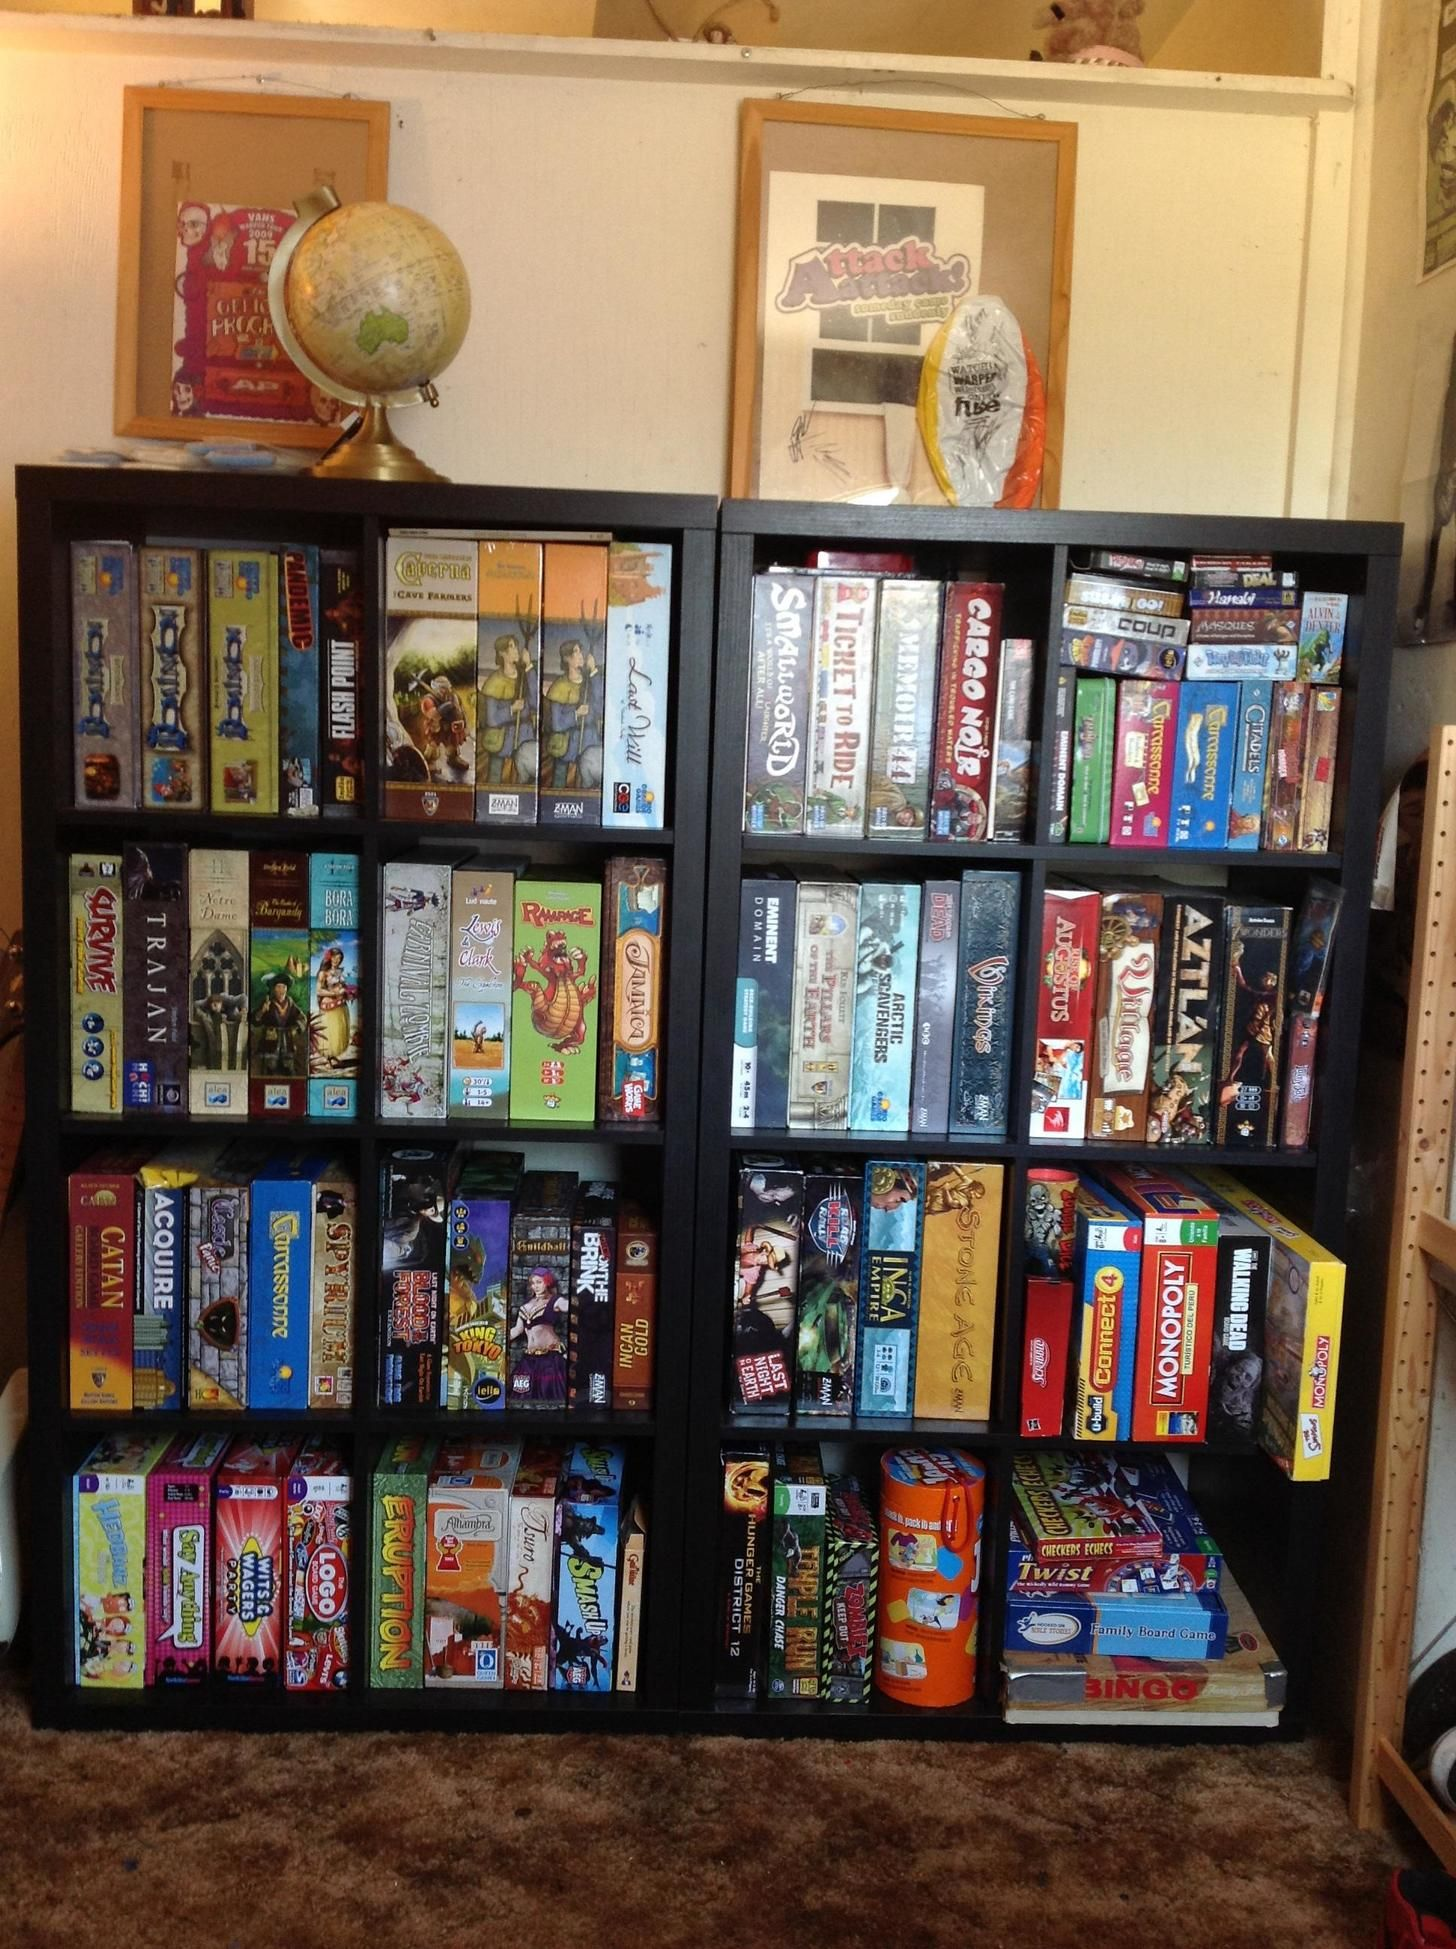 Ikea Kallax Shelves For Games Found From This Reddit Post Https Www Reddit Com R Boardgames Comments 29gvo Board Game Storage Game Room Bar Board Game Room